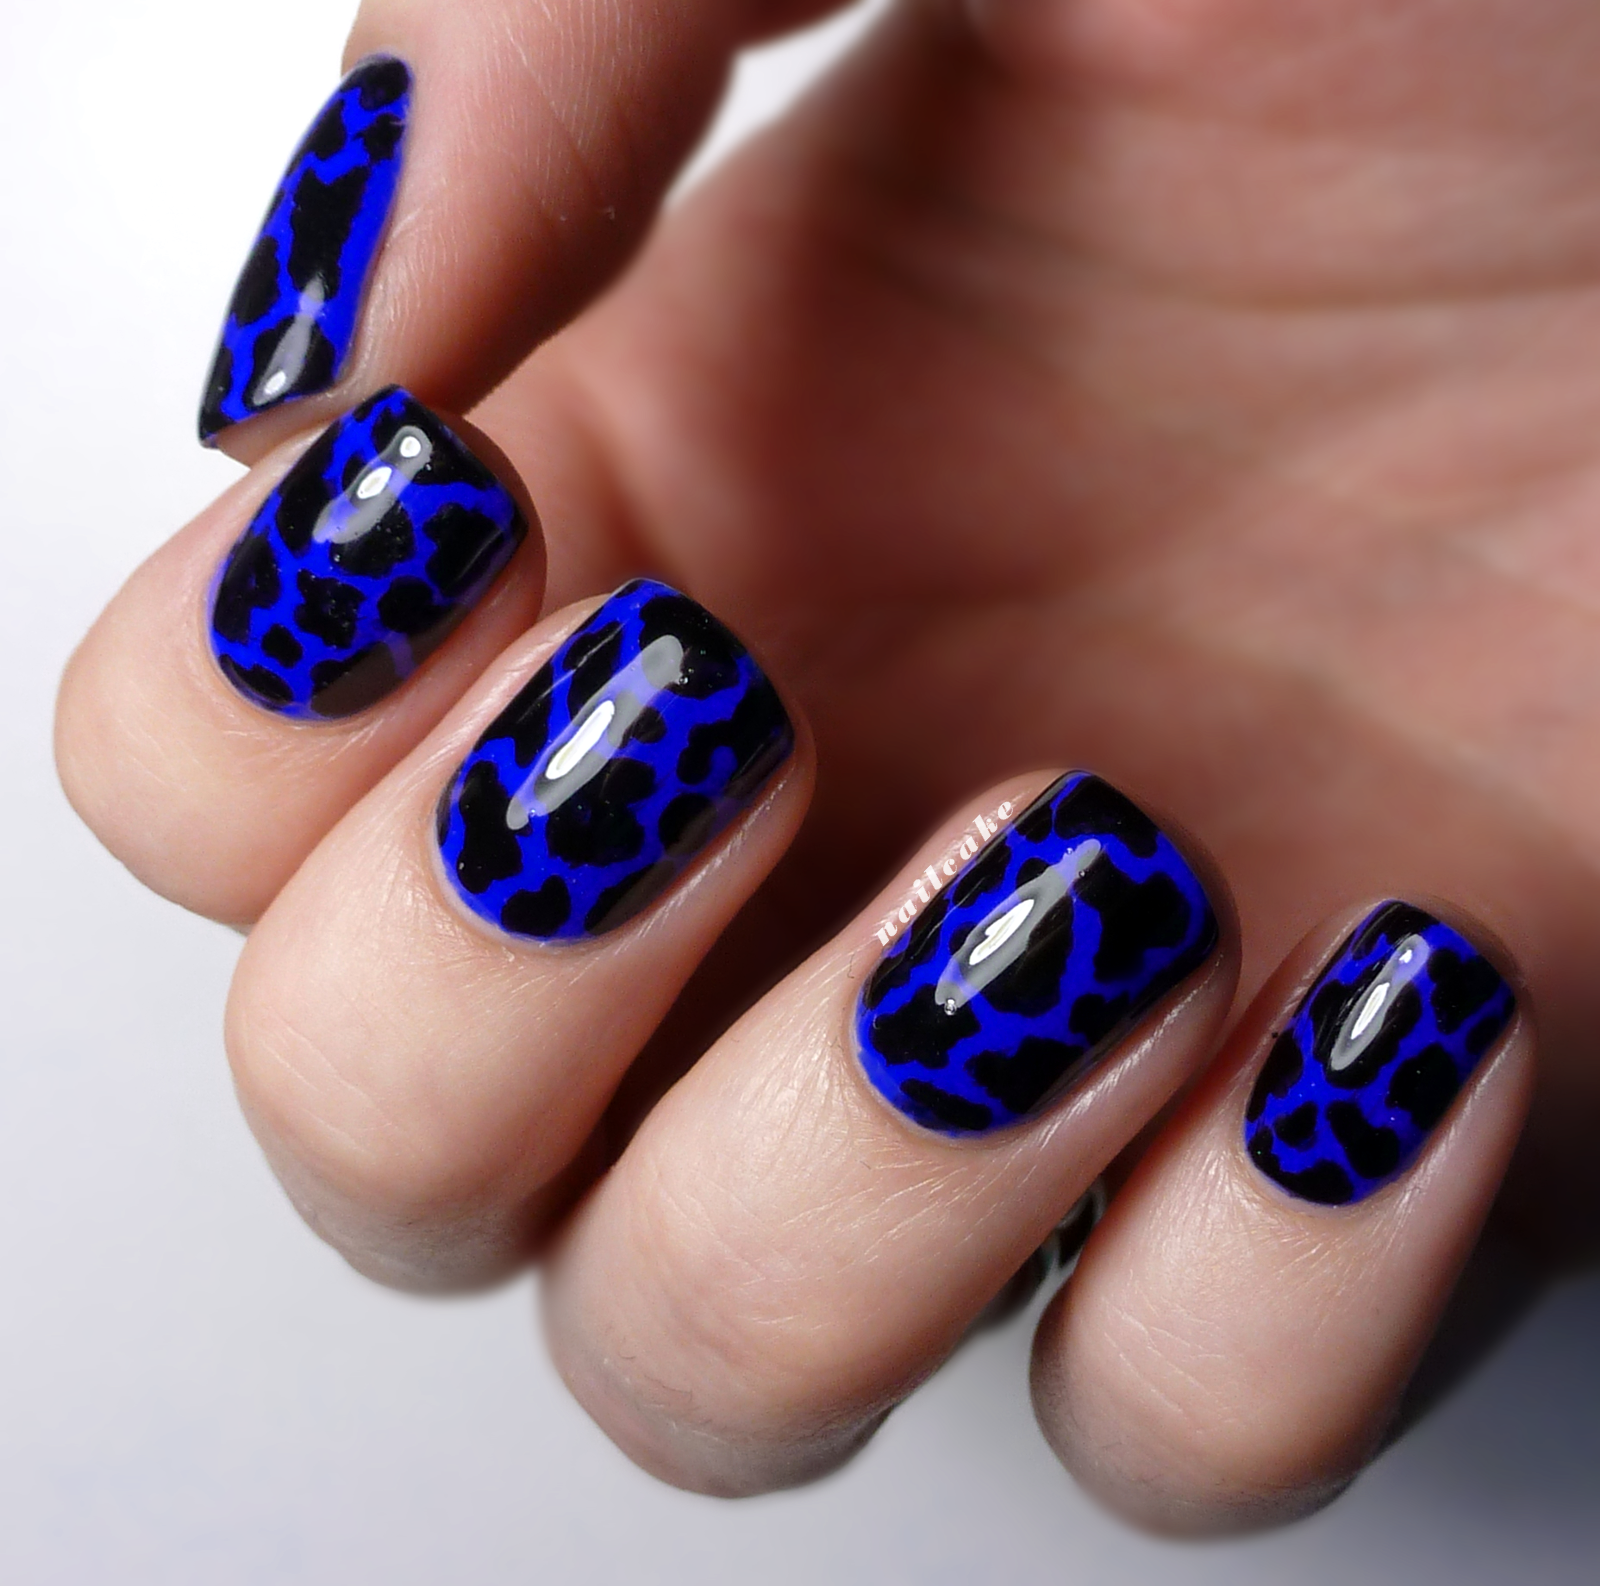 Nail Cake: Blue & Black Splodges/Cow Print | Nail Art | Nailss ...